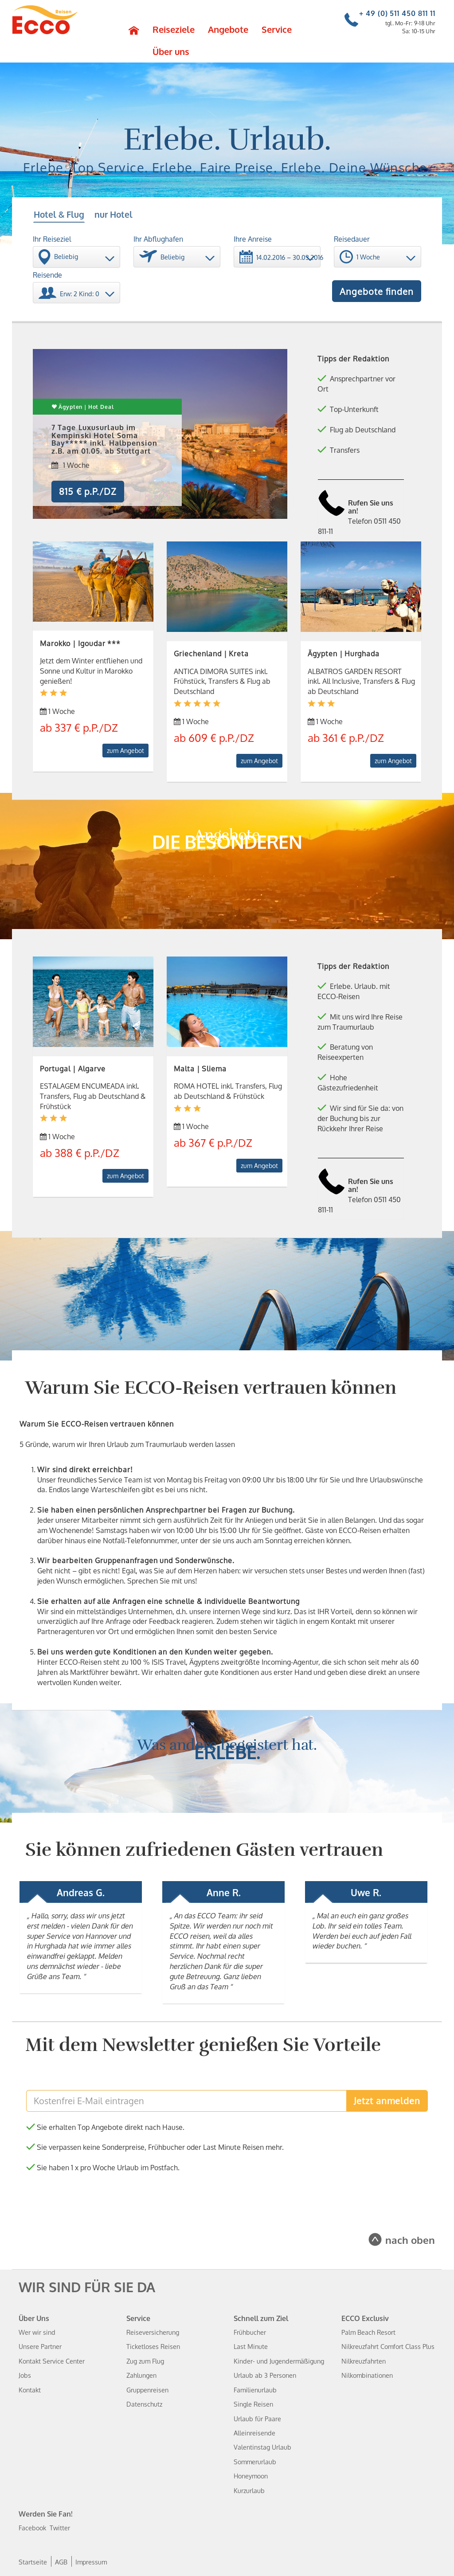 reputable site 1f737 8859f Ecco Reisen Competitors, Revenue and Employees - Owler ...